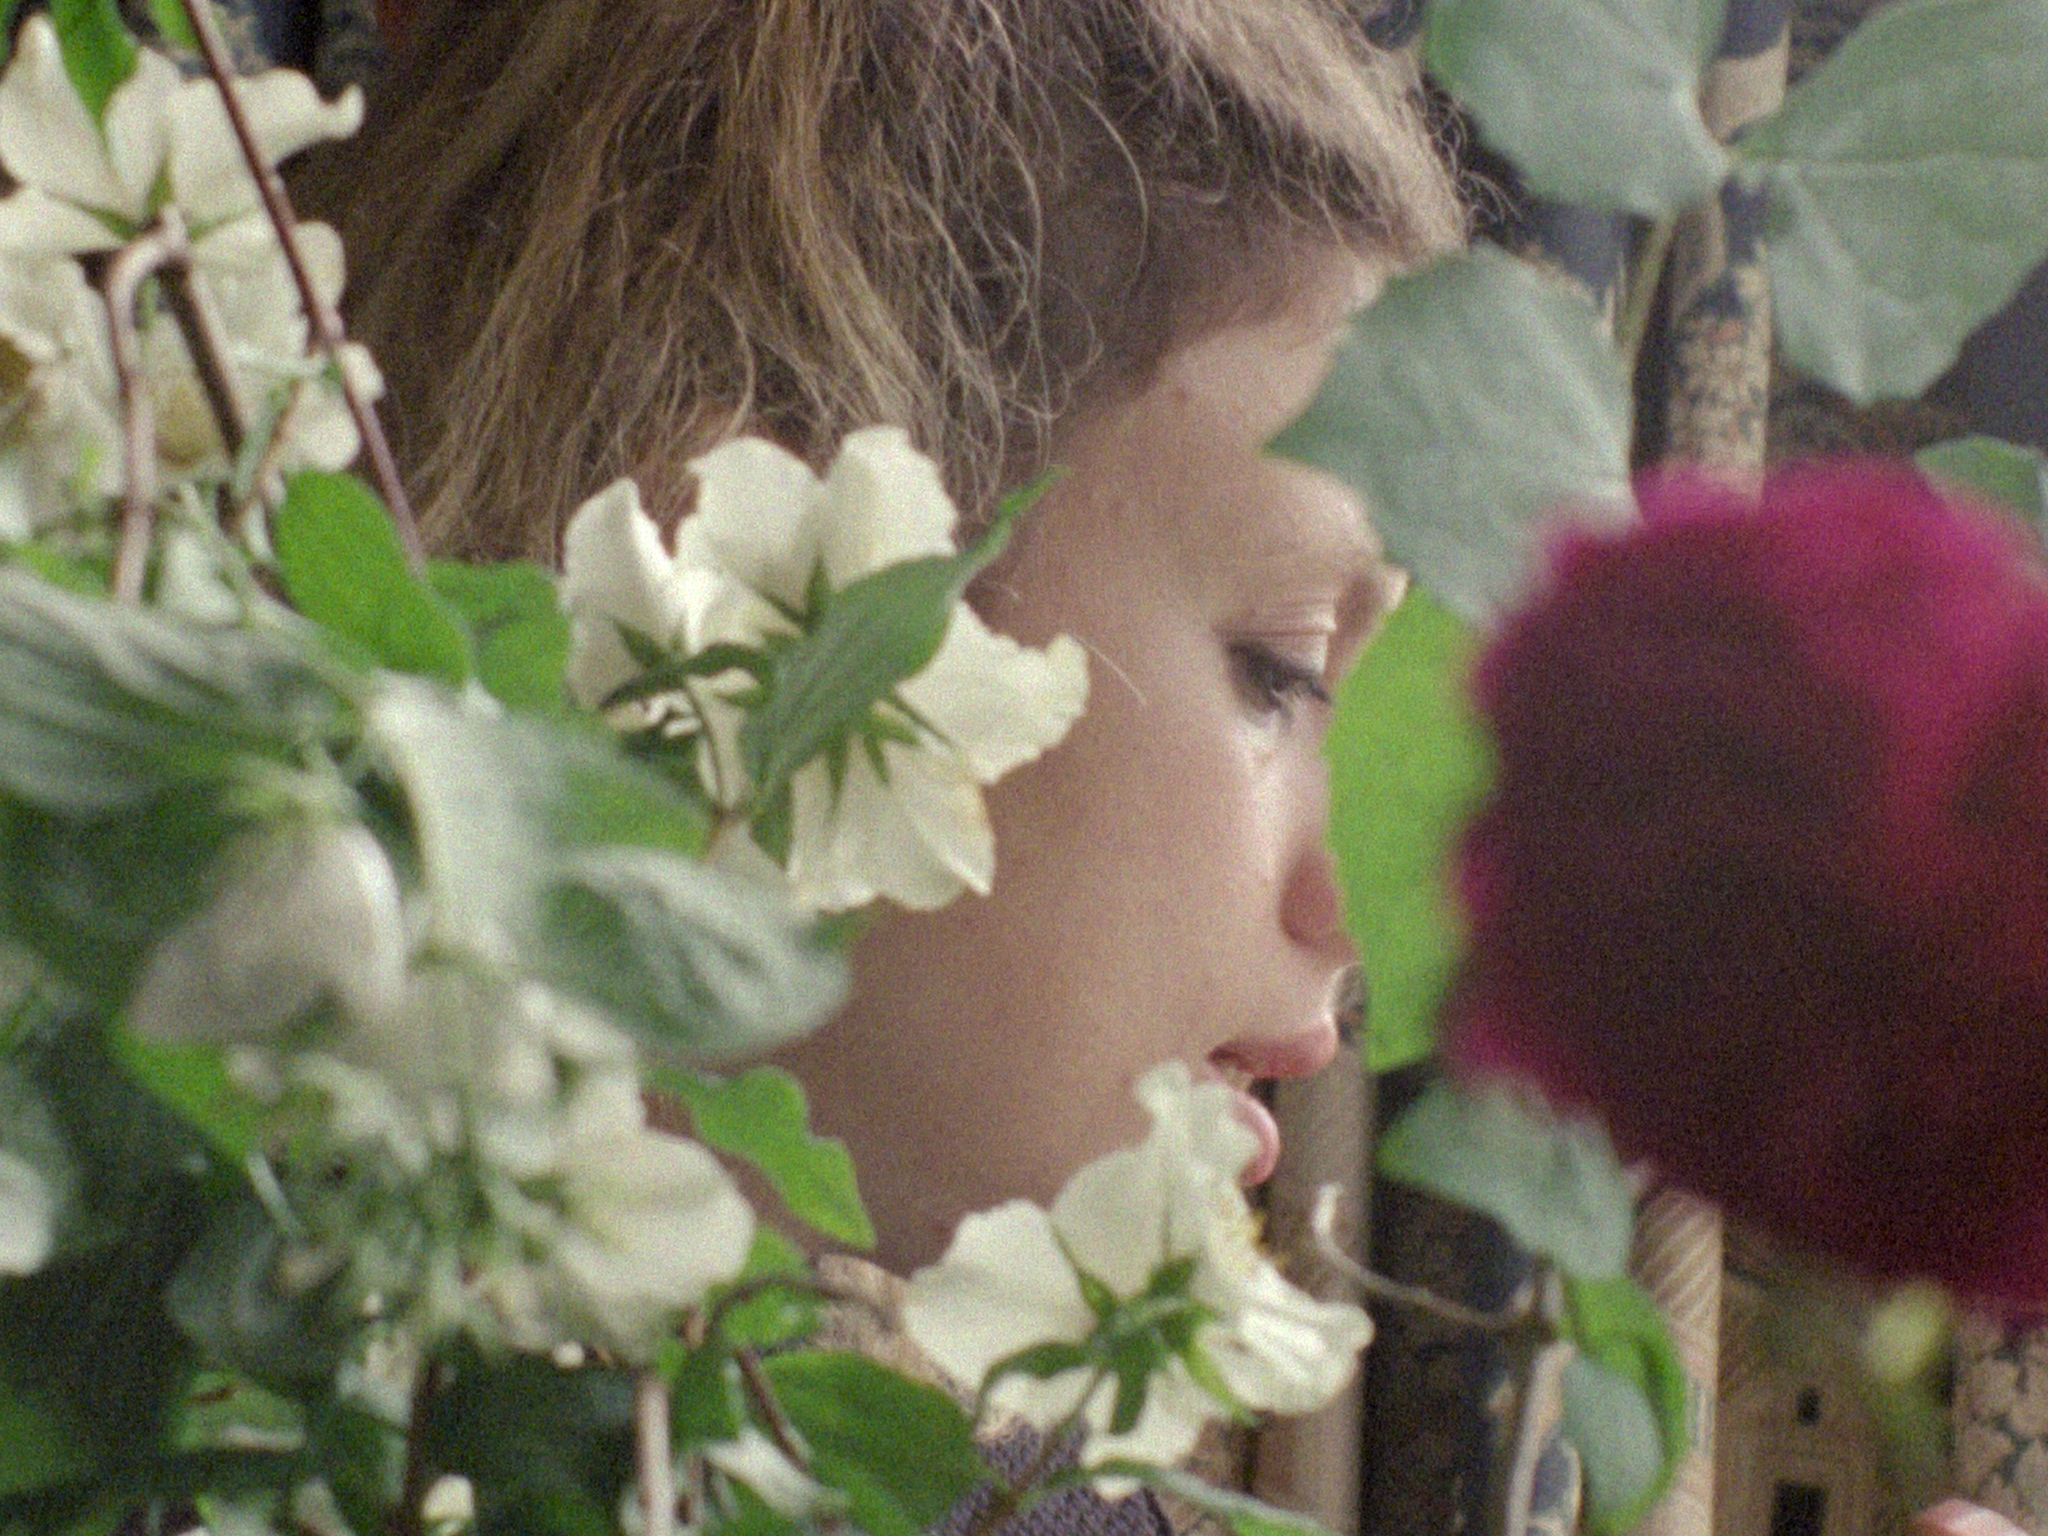 Monument: A close up on a person's face in profile, surrounded by flowers and leaves, shot in soft focus.